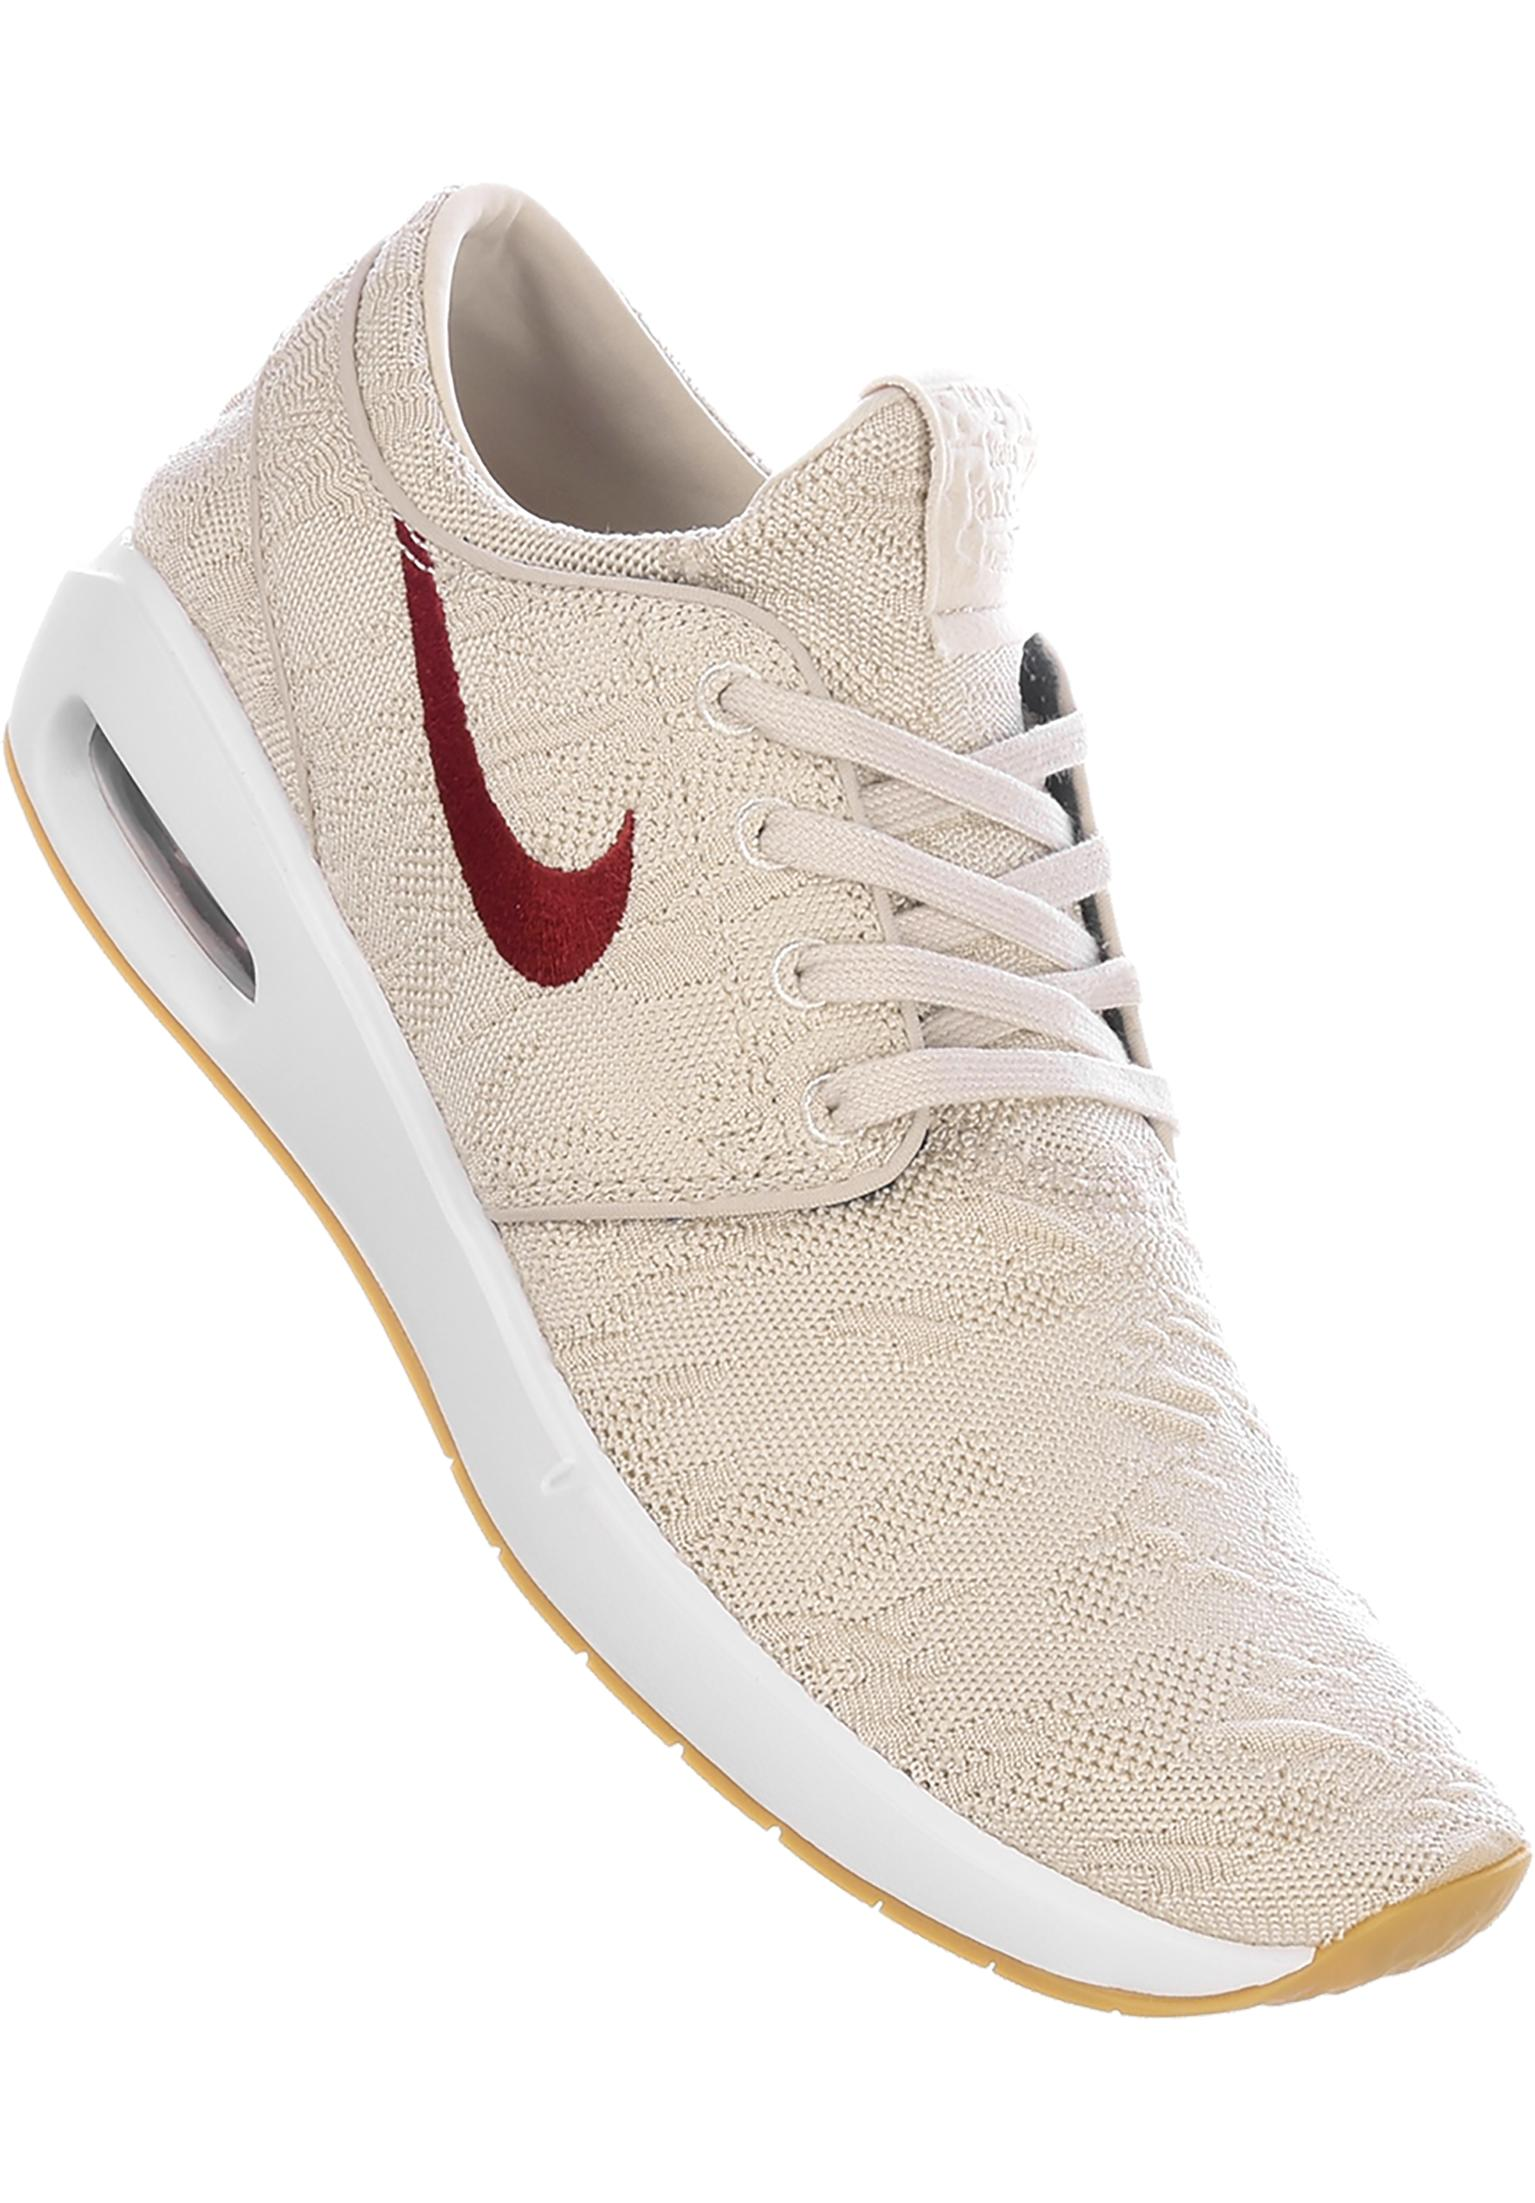 reputable site 7e402 6c847 Air Max Janoski 2